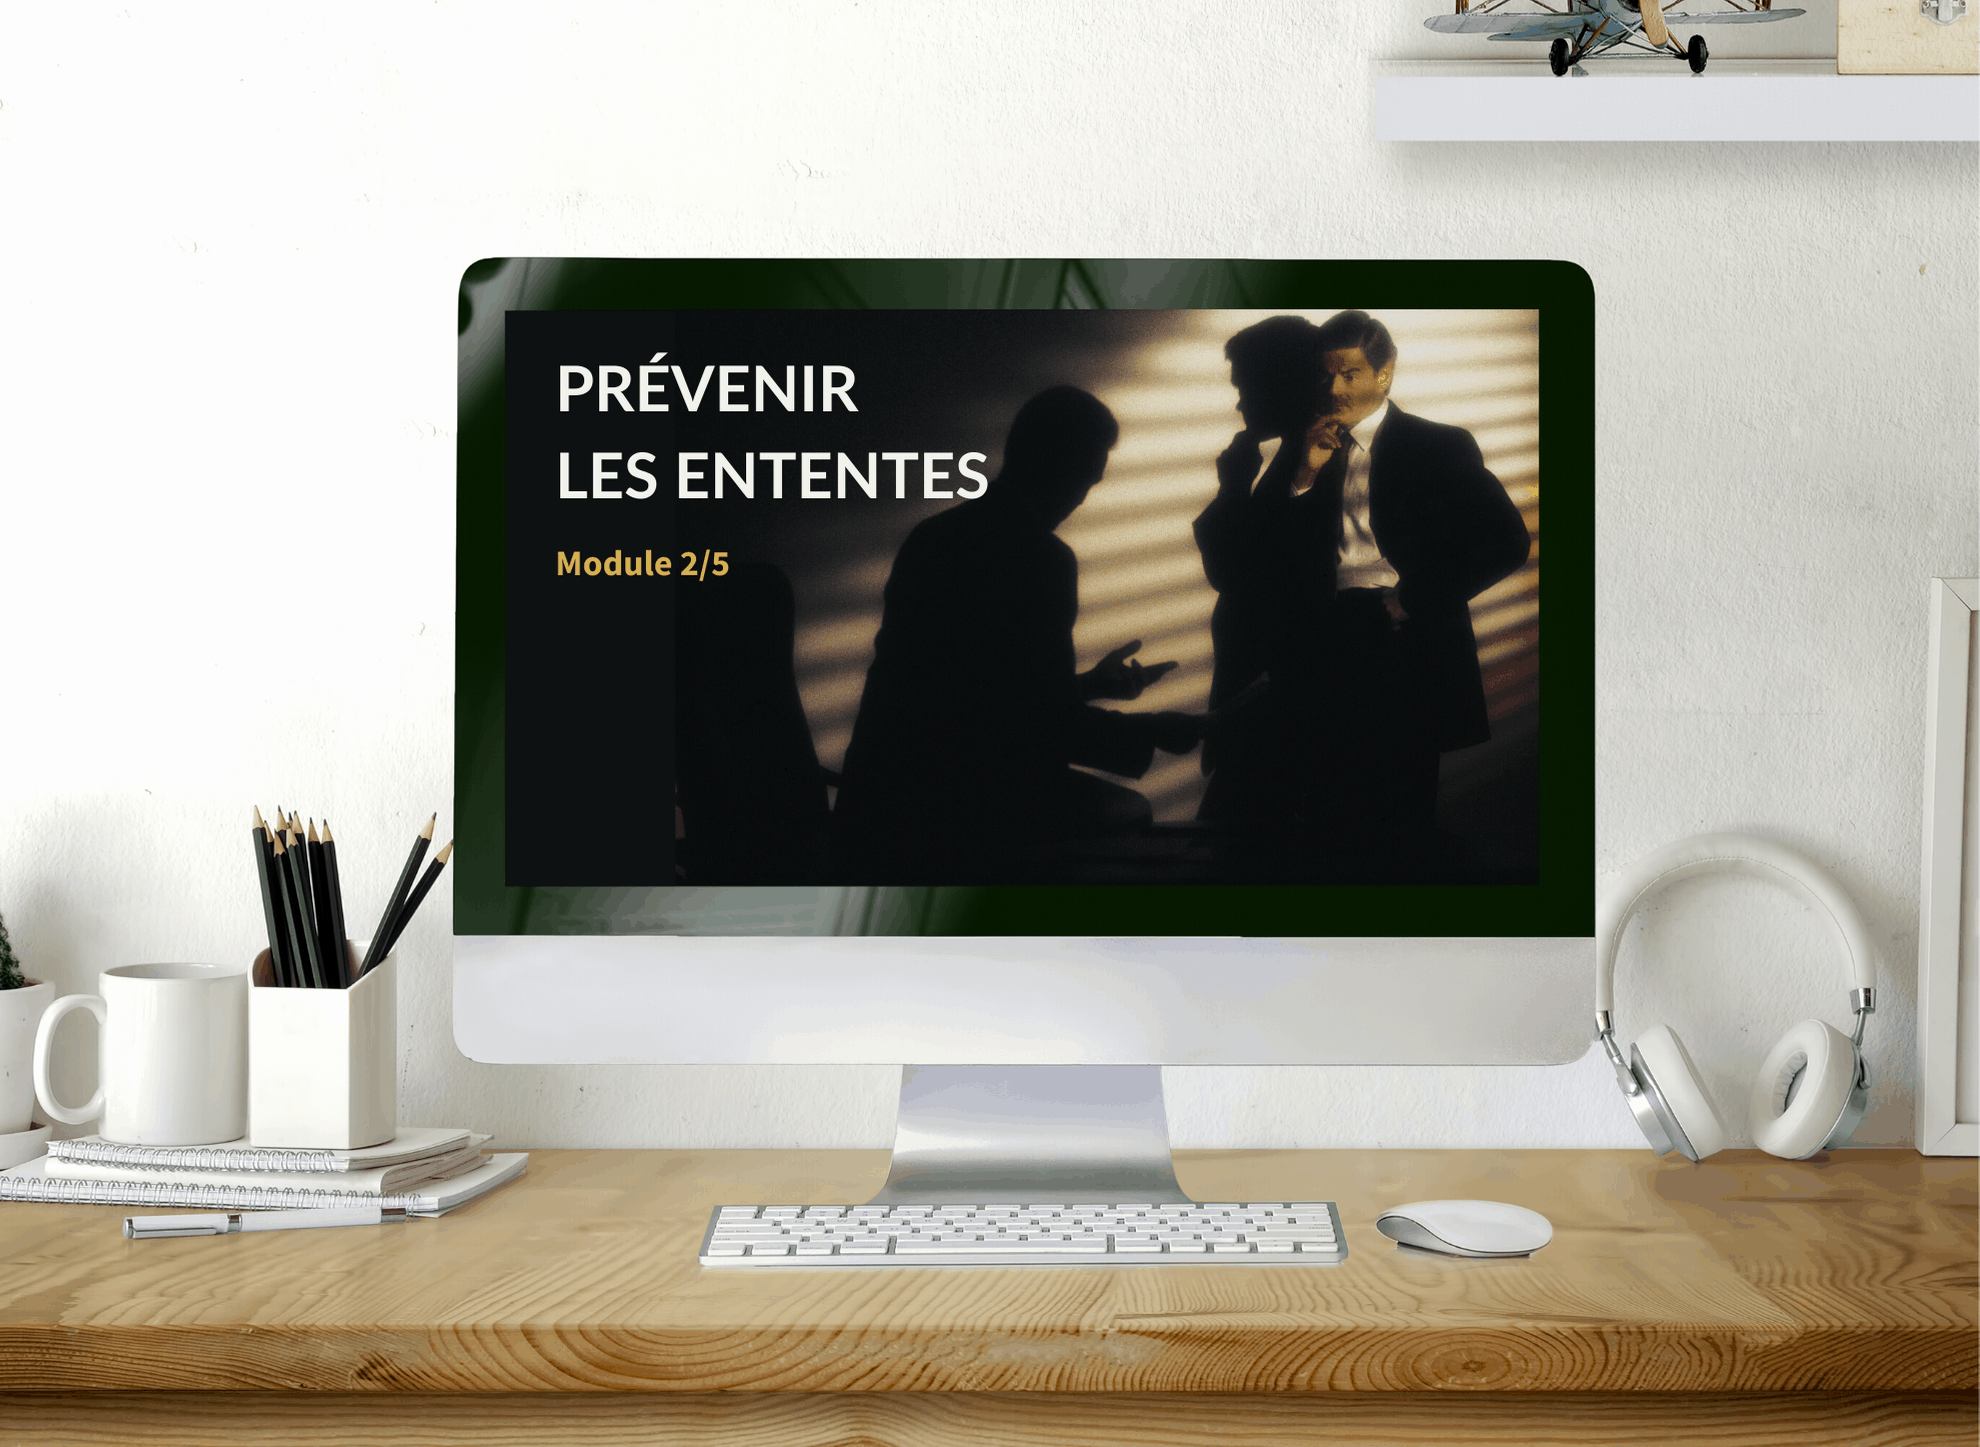 E-learning pratiques anticoncurrentielles